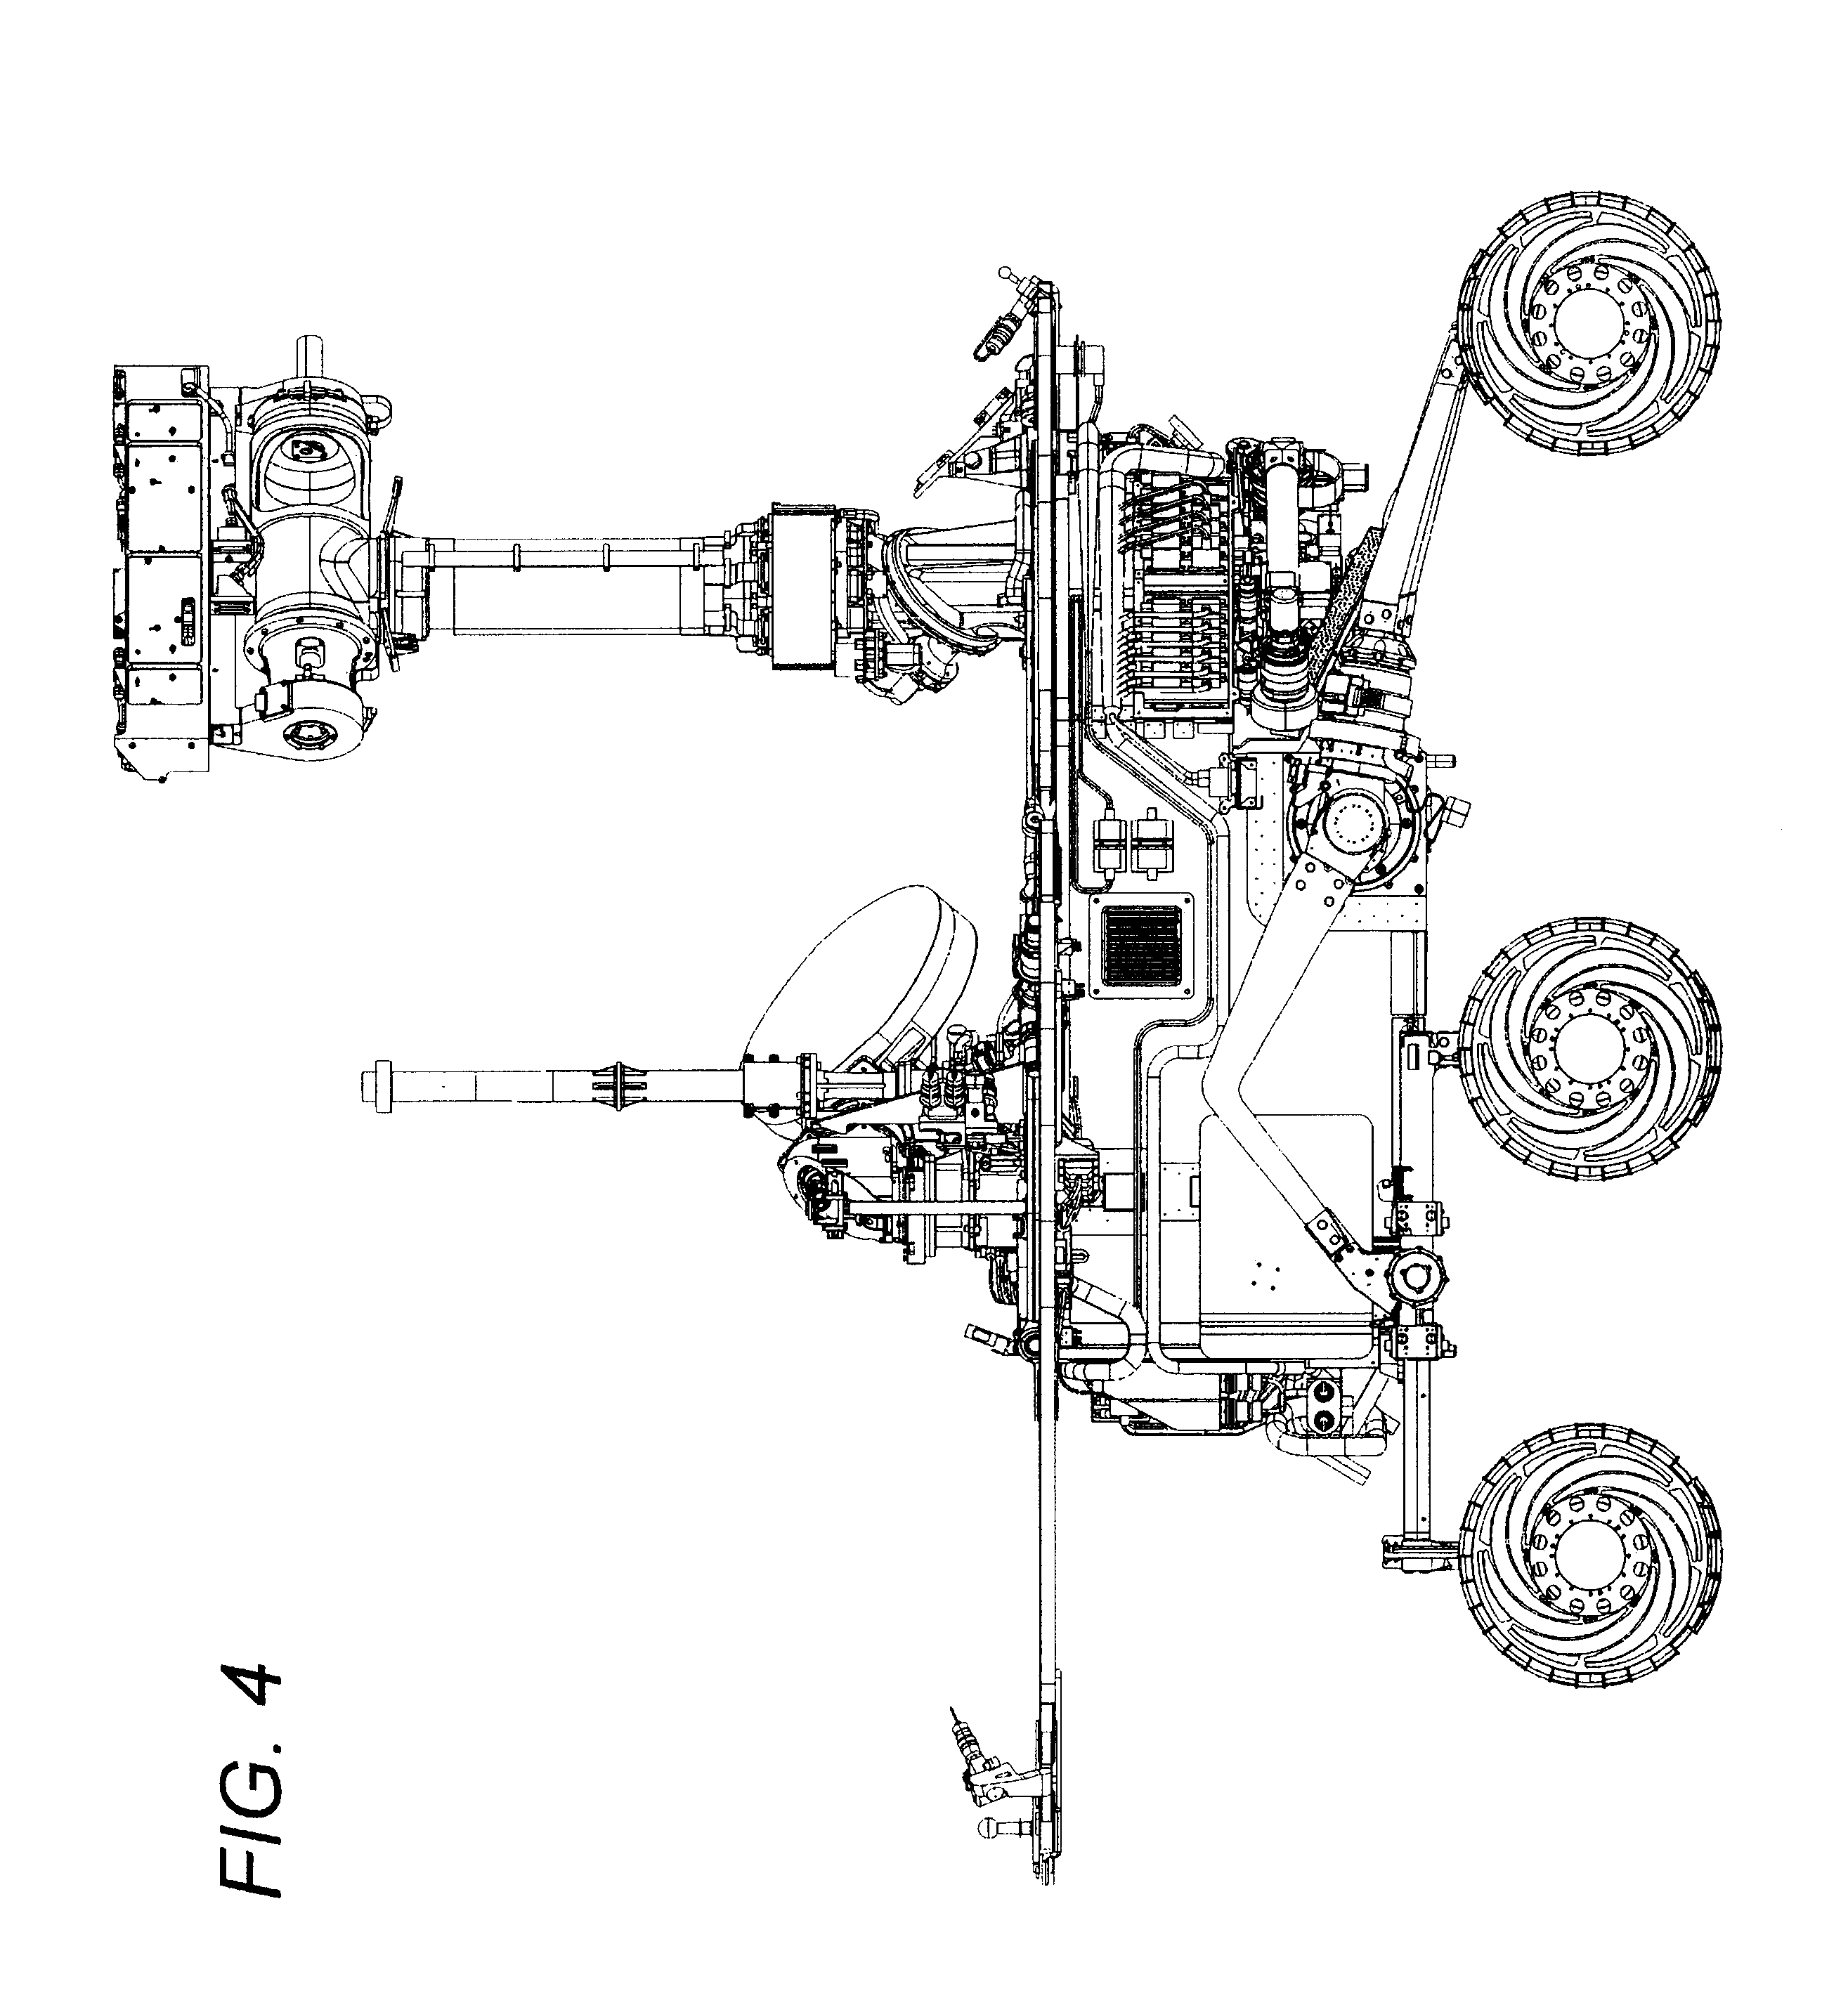 Nasa Rover Drawlings